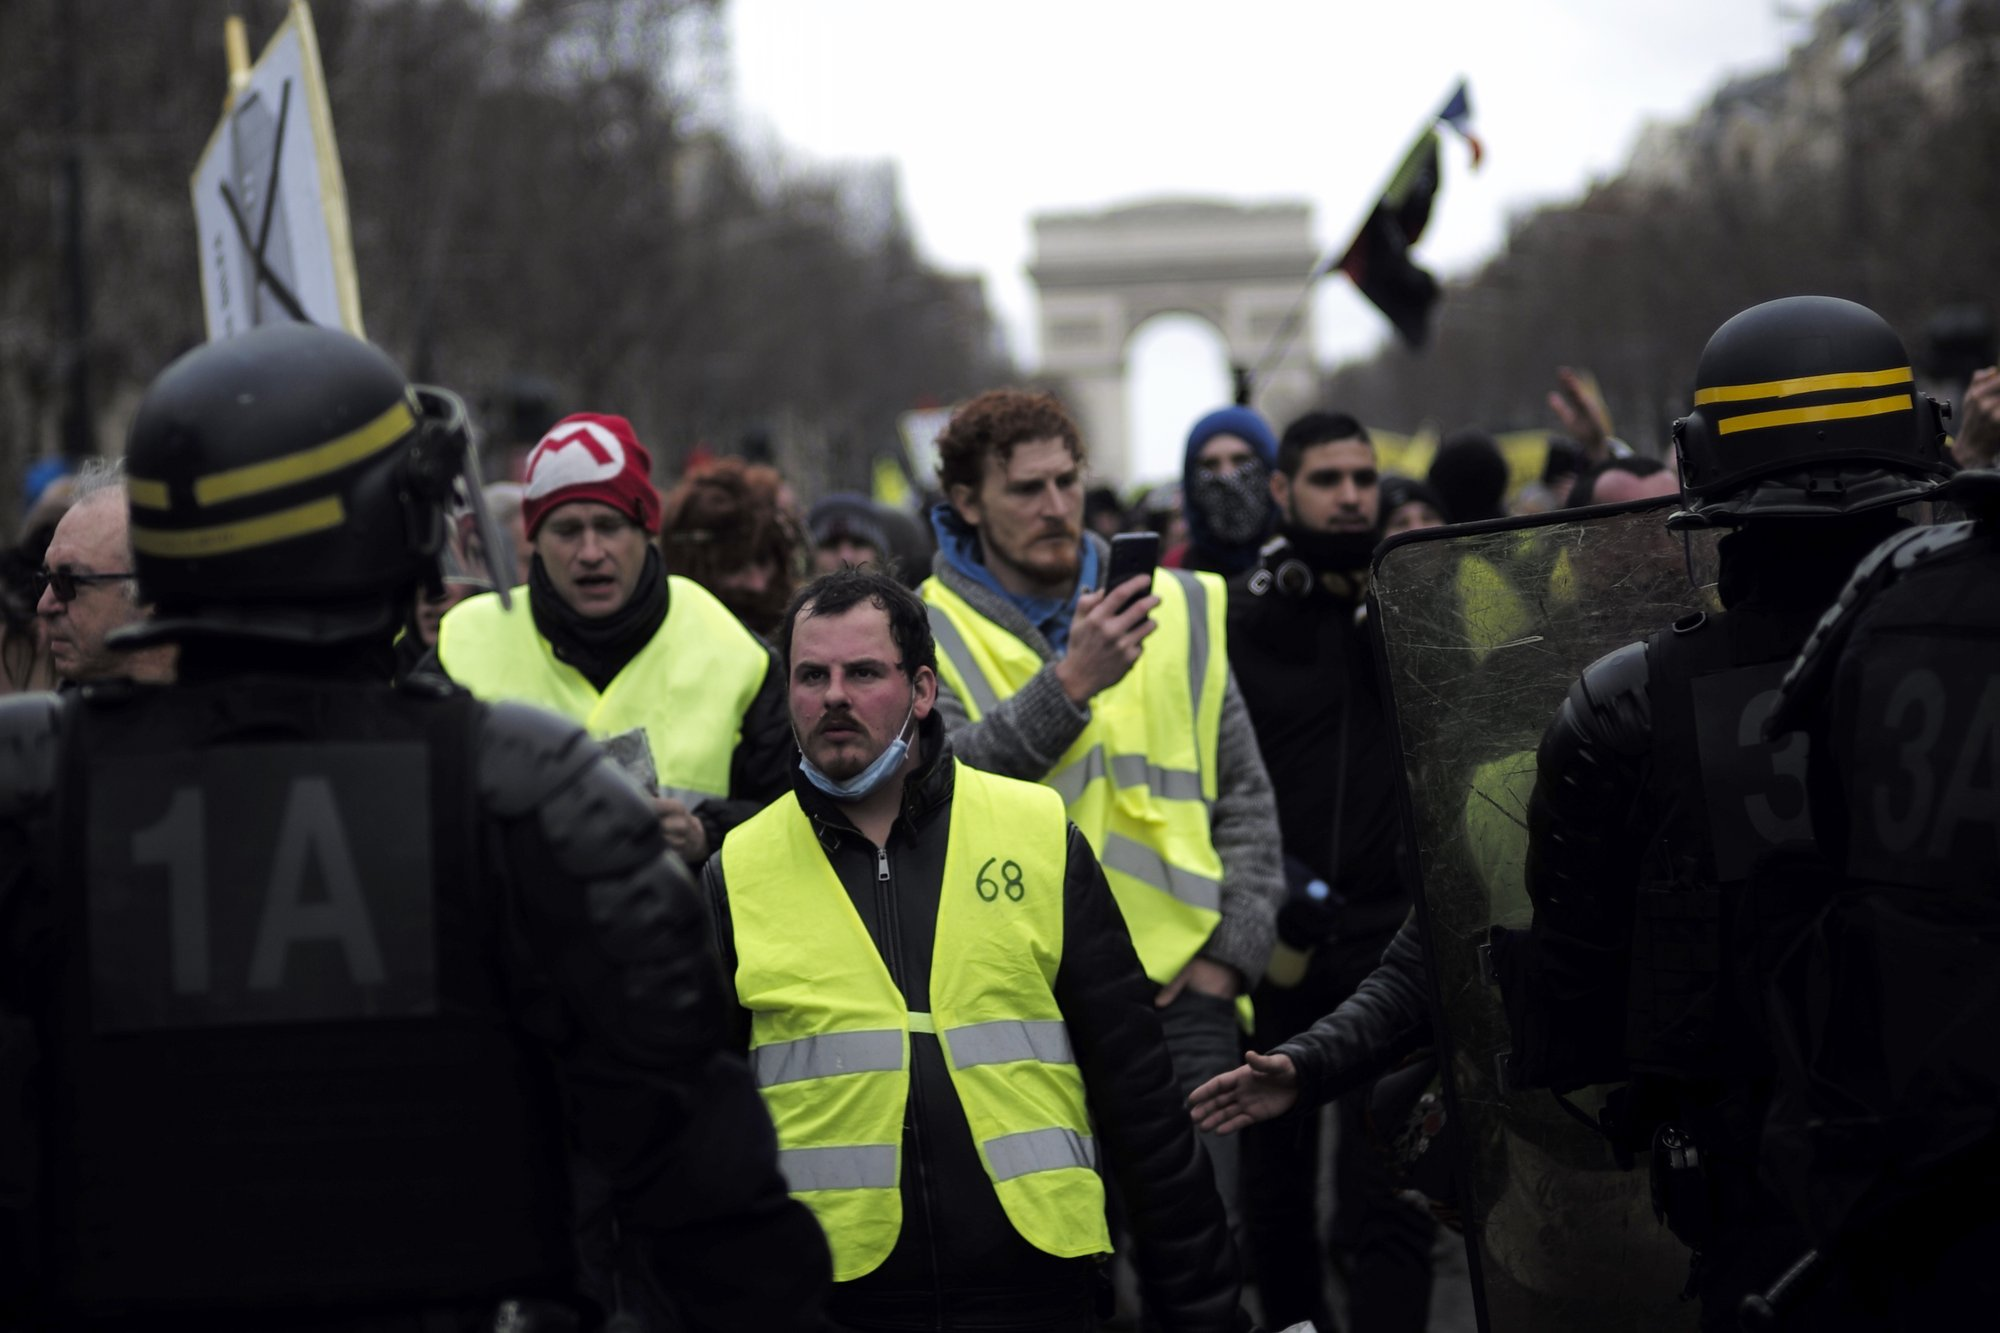 Over 8,000 arrested in wake of violent 'Yellow Vest' demonstrations